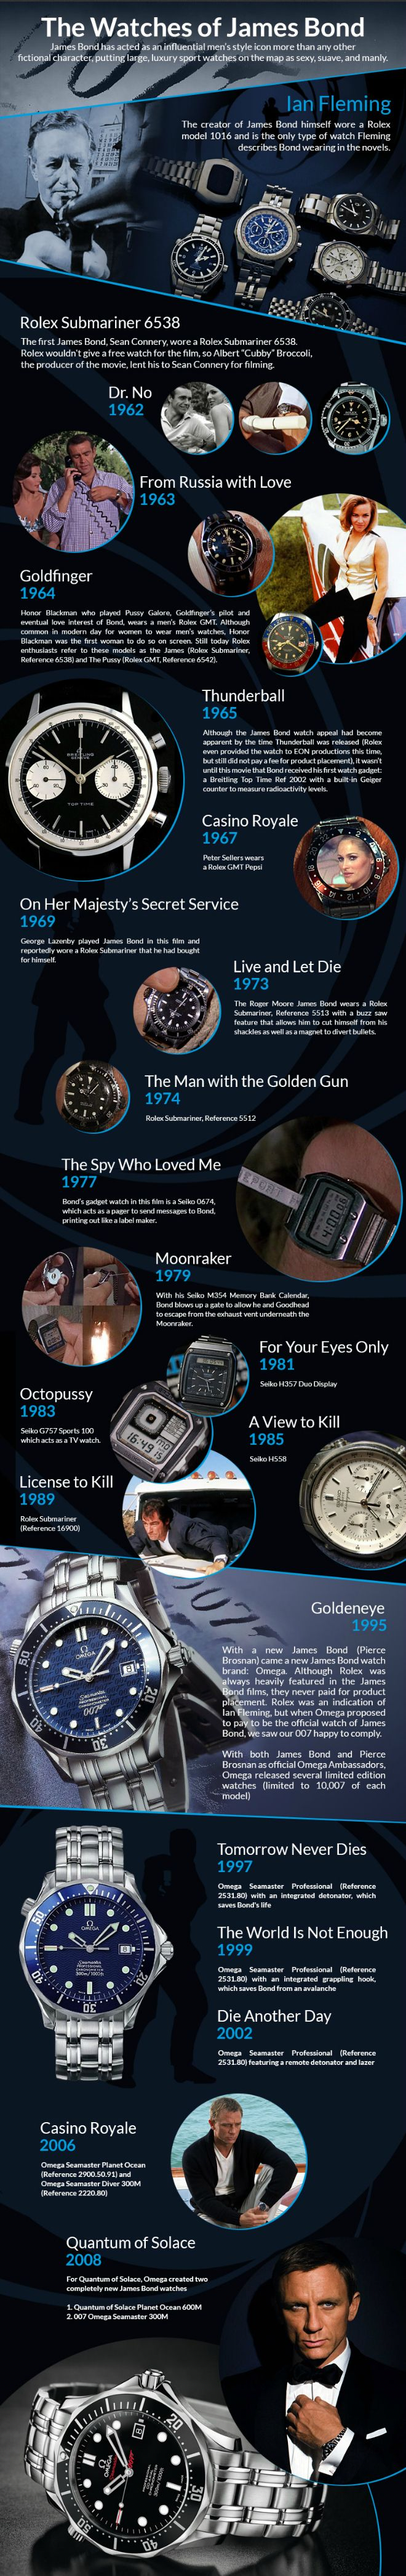 An Awesome Infographic Showcasing The Watches Of James BondSand Man